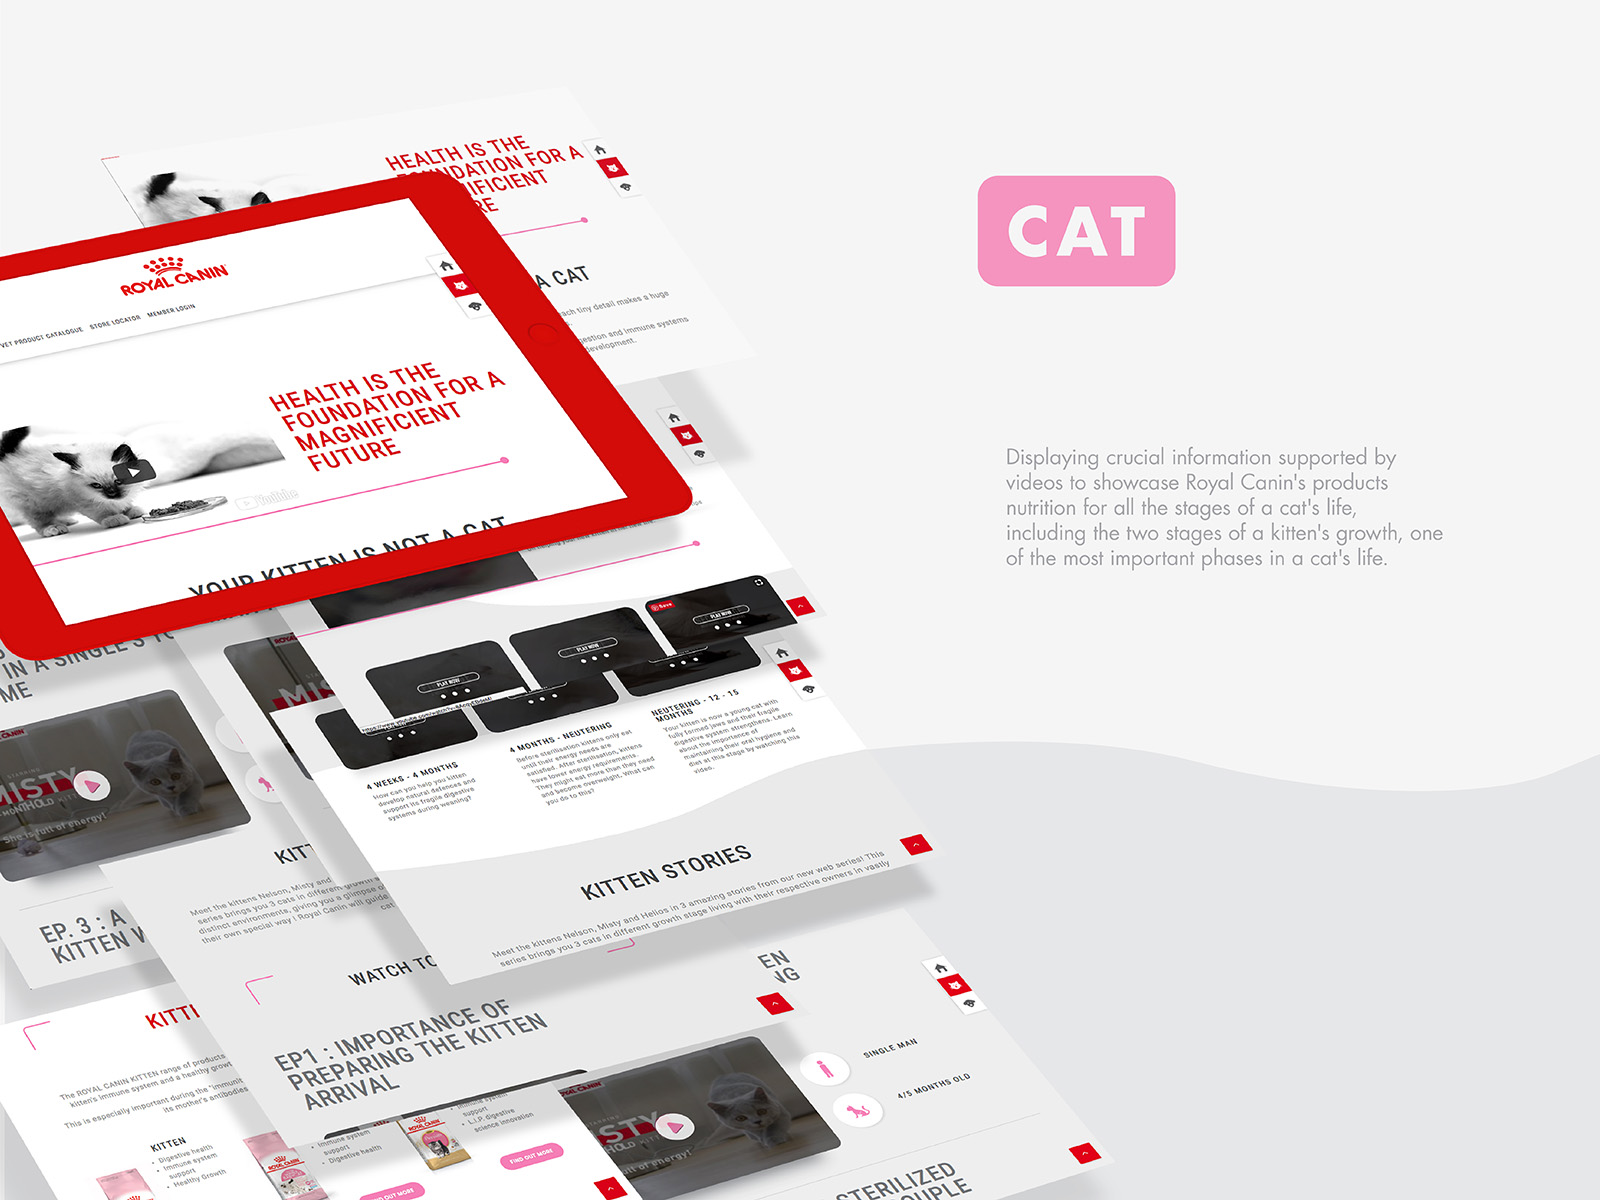 Royal Canin birth and growth campaign microsite kitten growth page and information